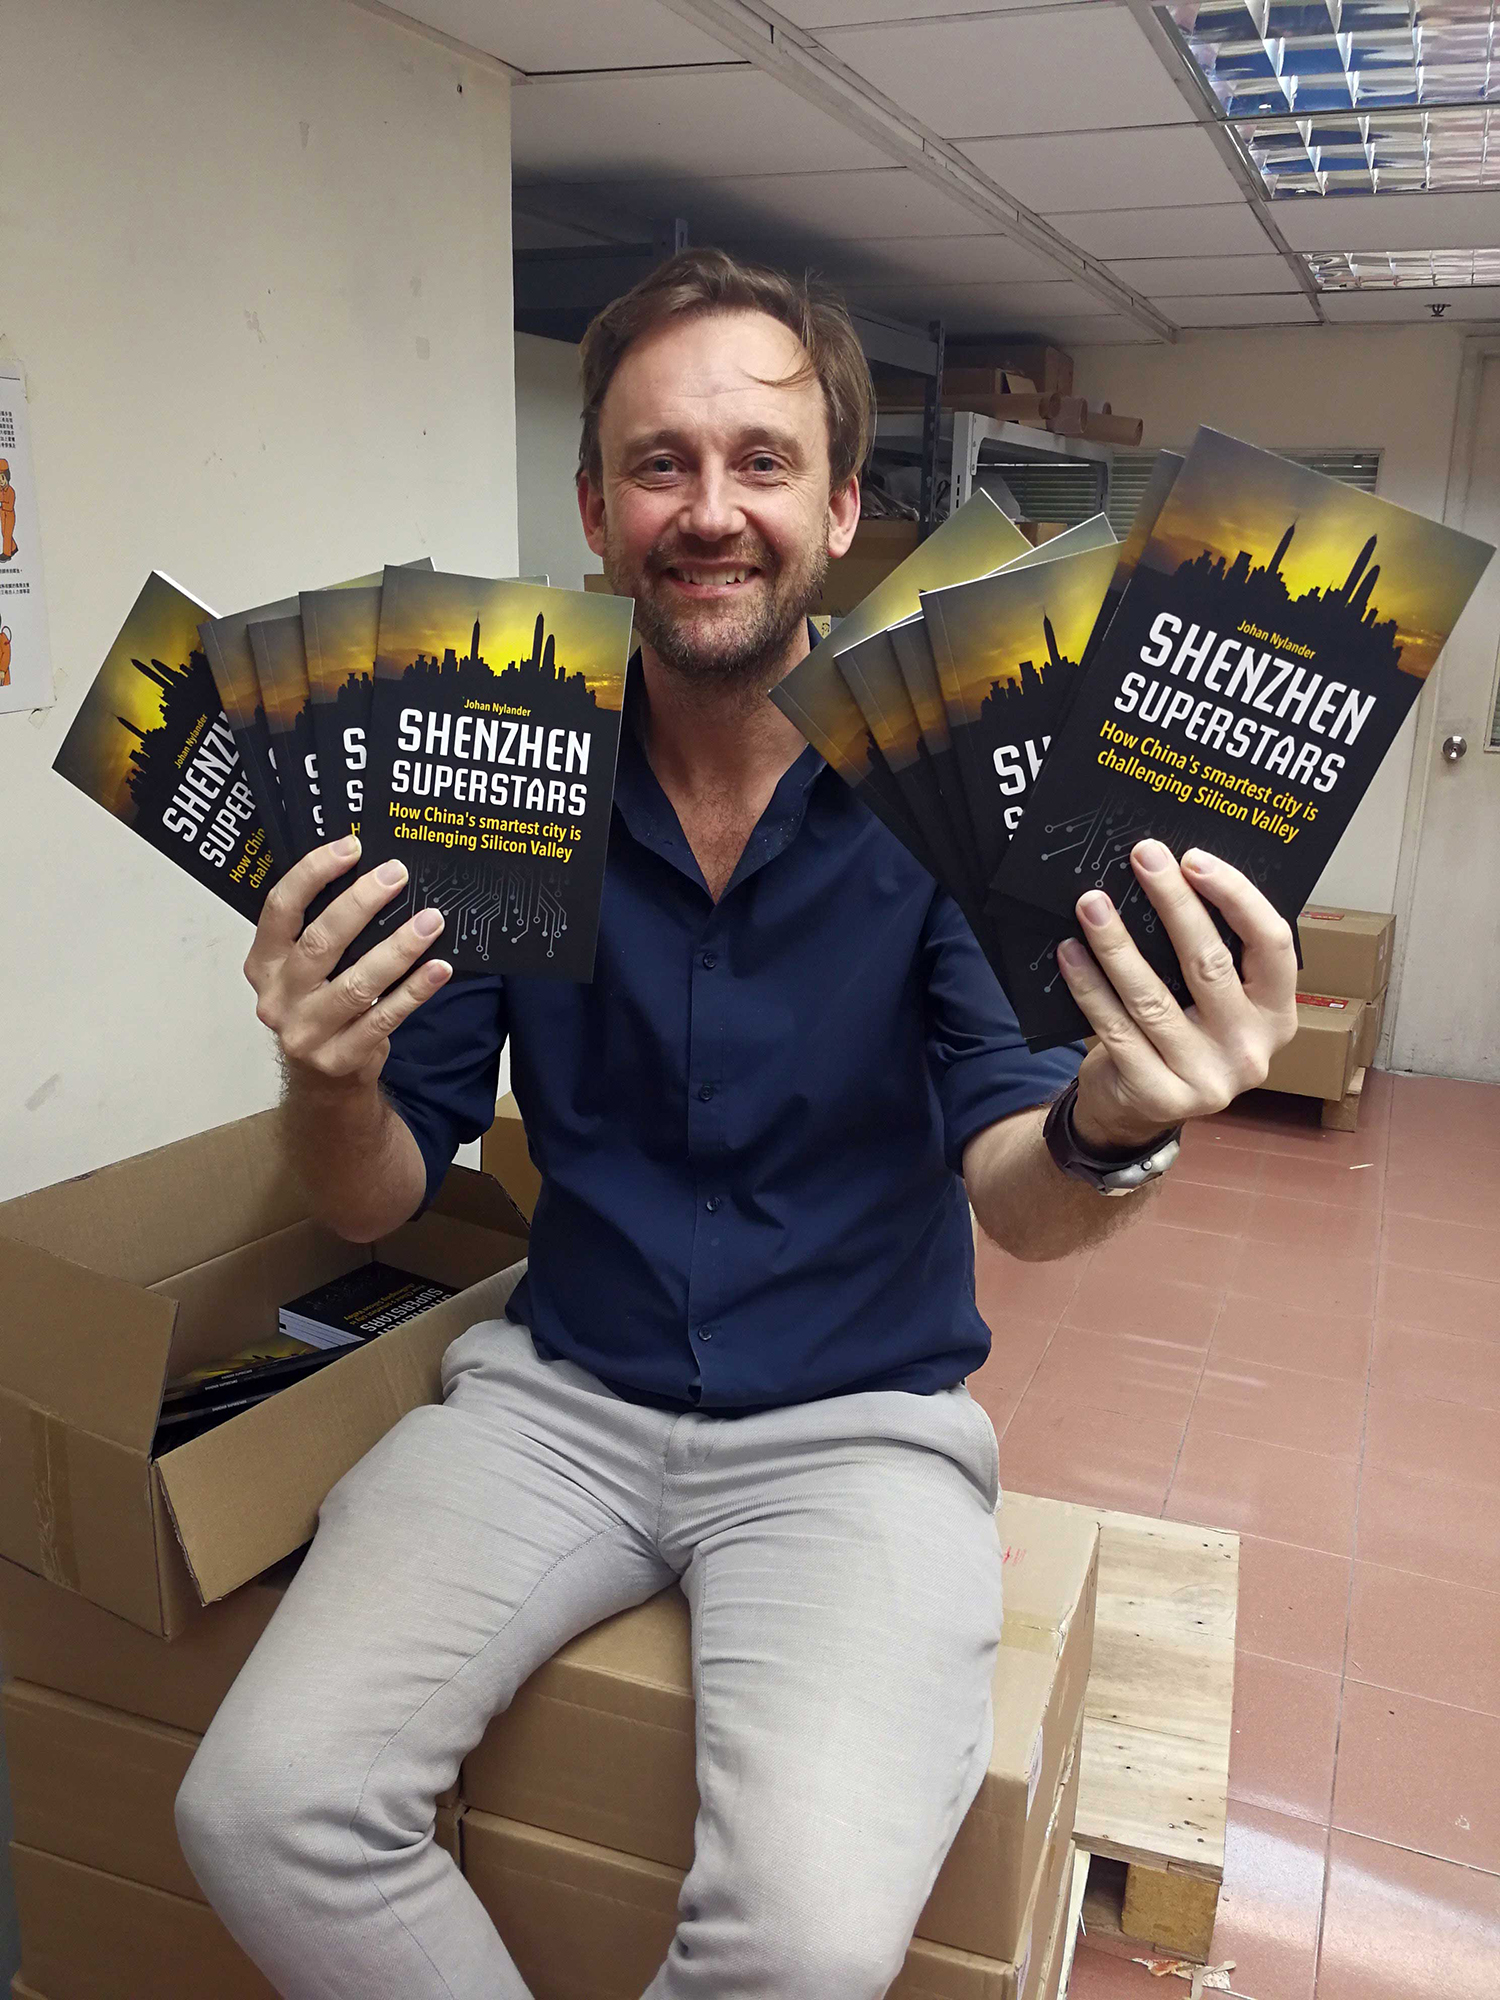 Johan Nylander with his book, Shenzhen Superstars – How China's smartest city is challenging Silicon Valley